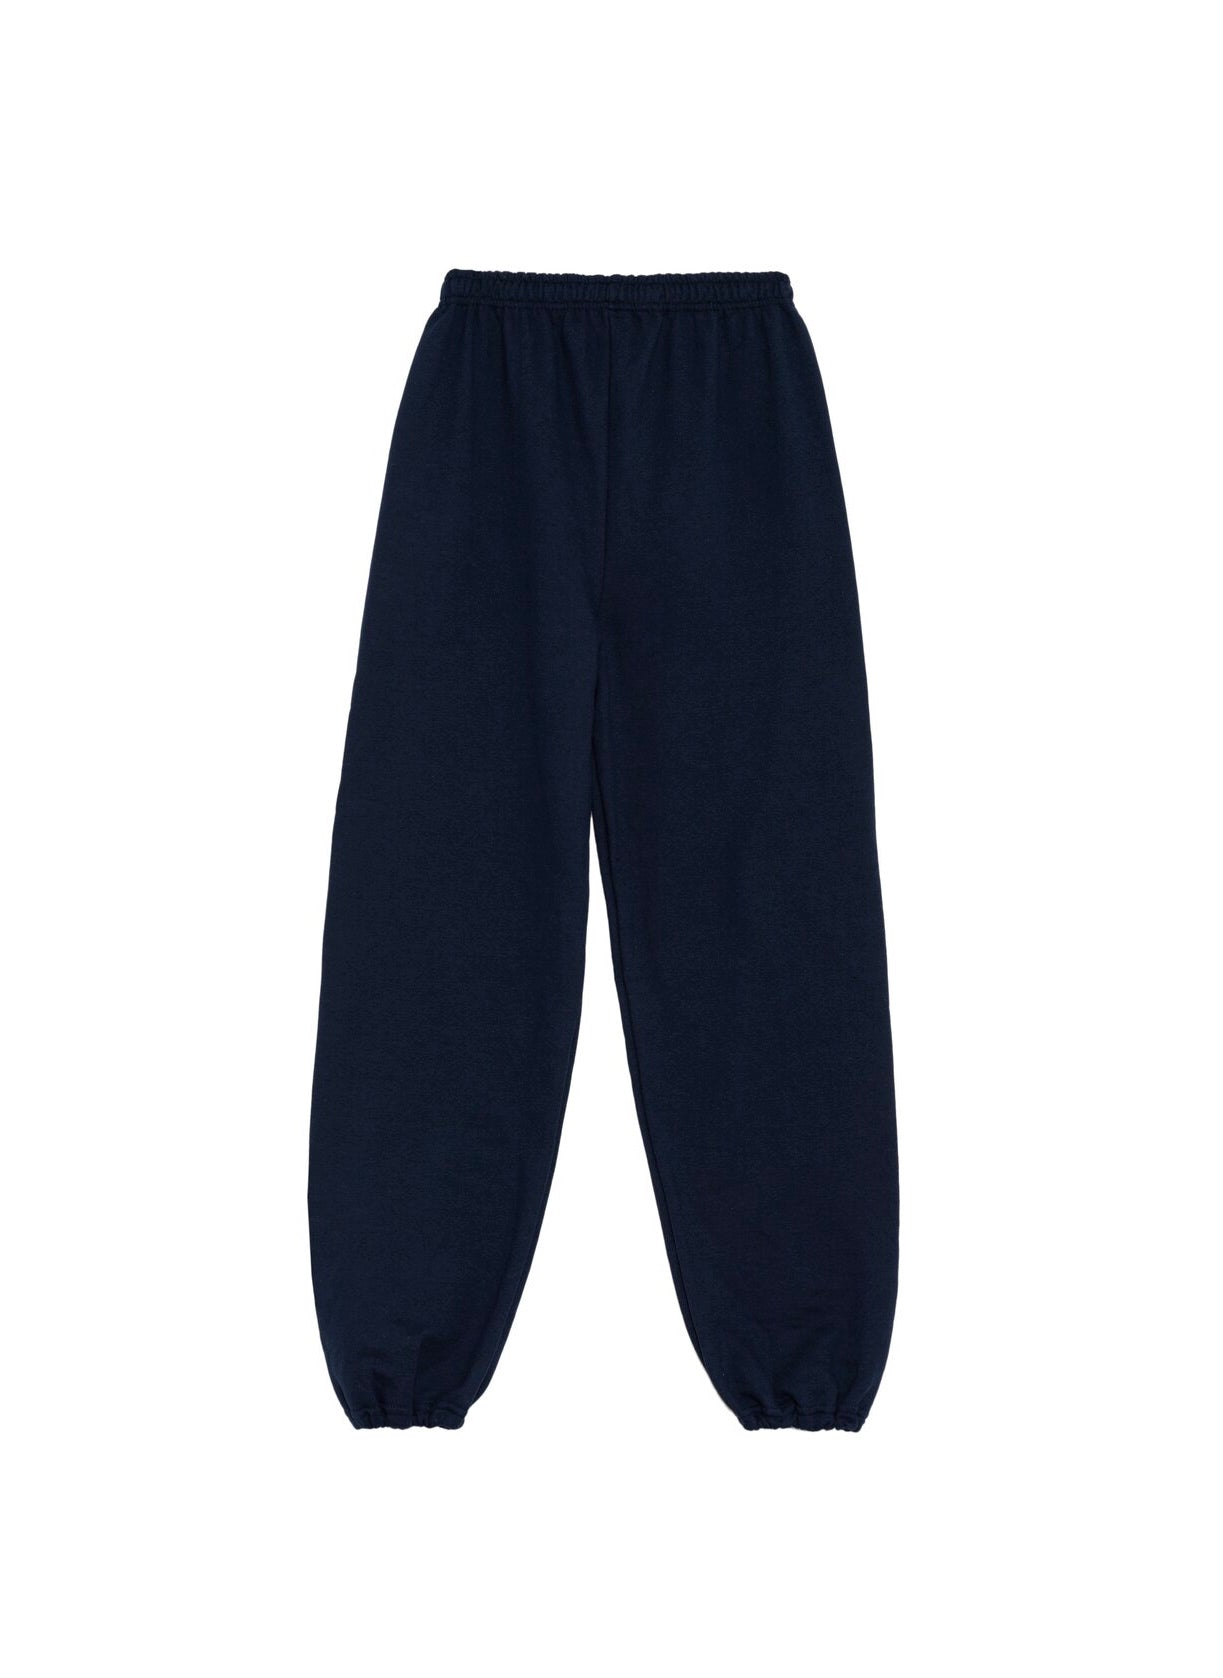 WILLY CHAVARRIA / HELPER SWEAT PANT NAVY